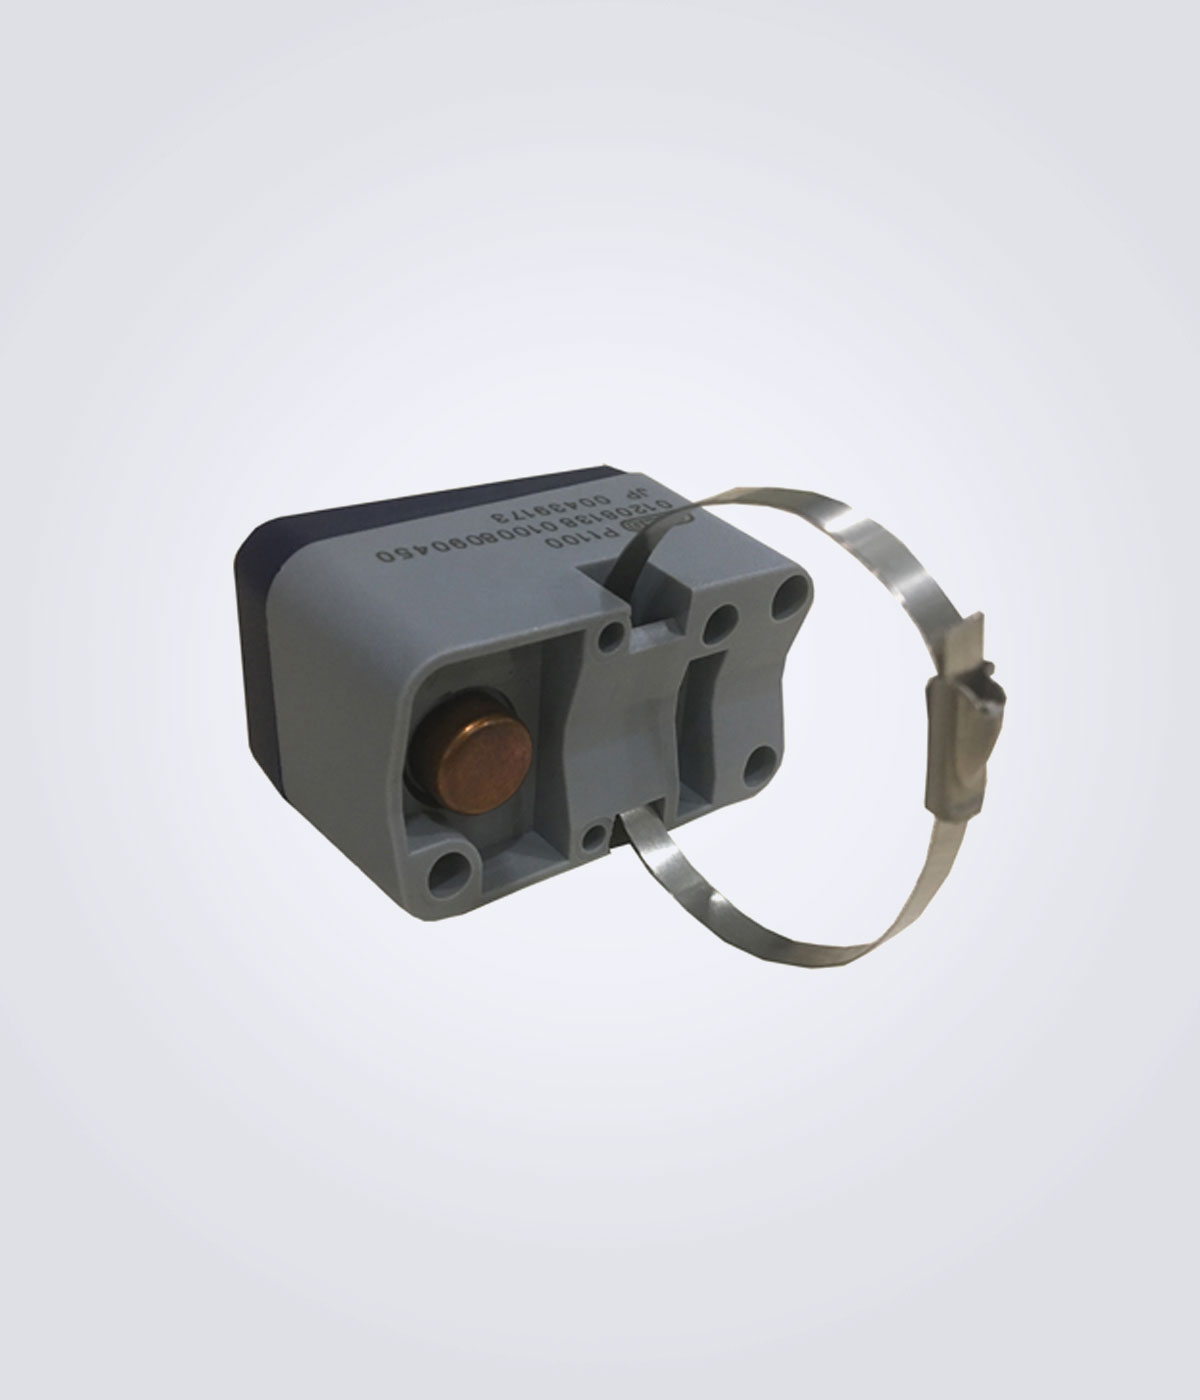 Temperature Sensor along with Head mounted Transmitter